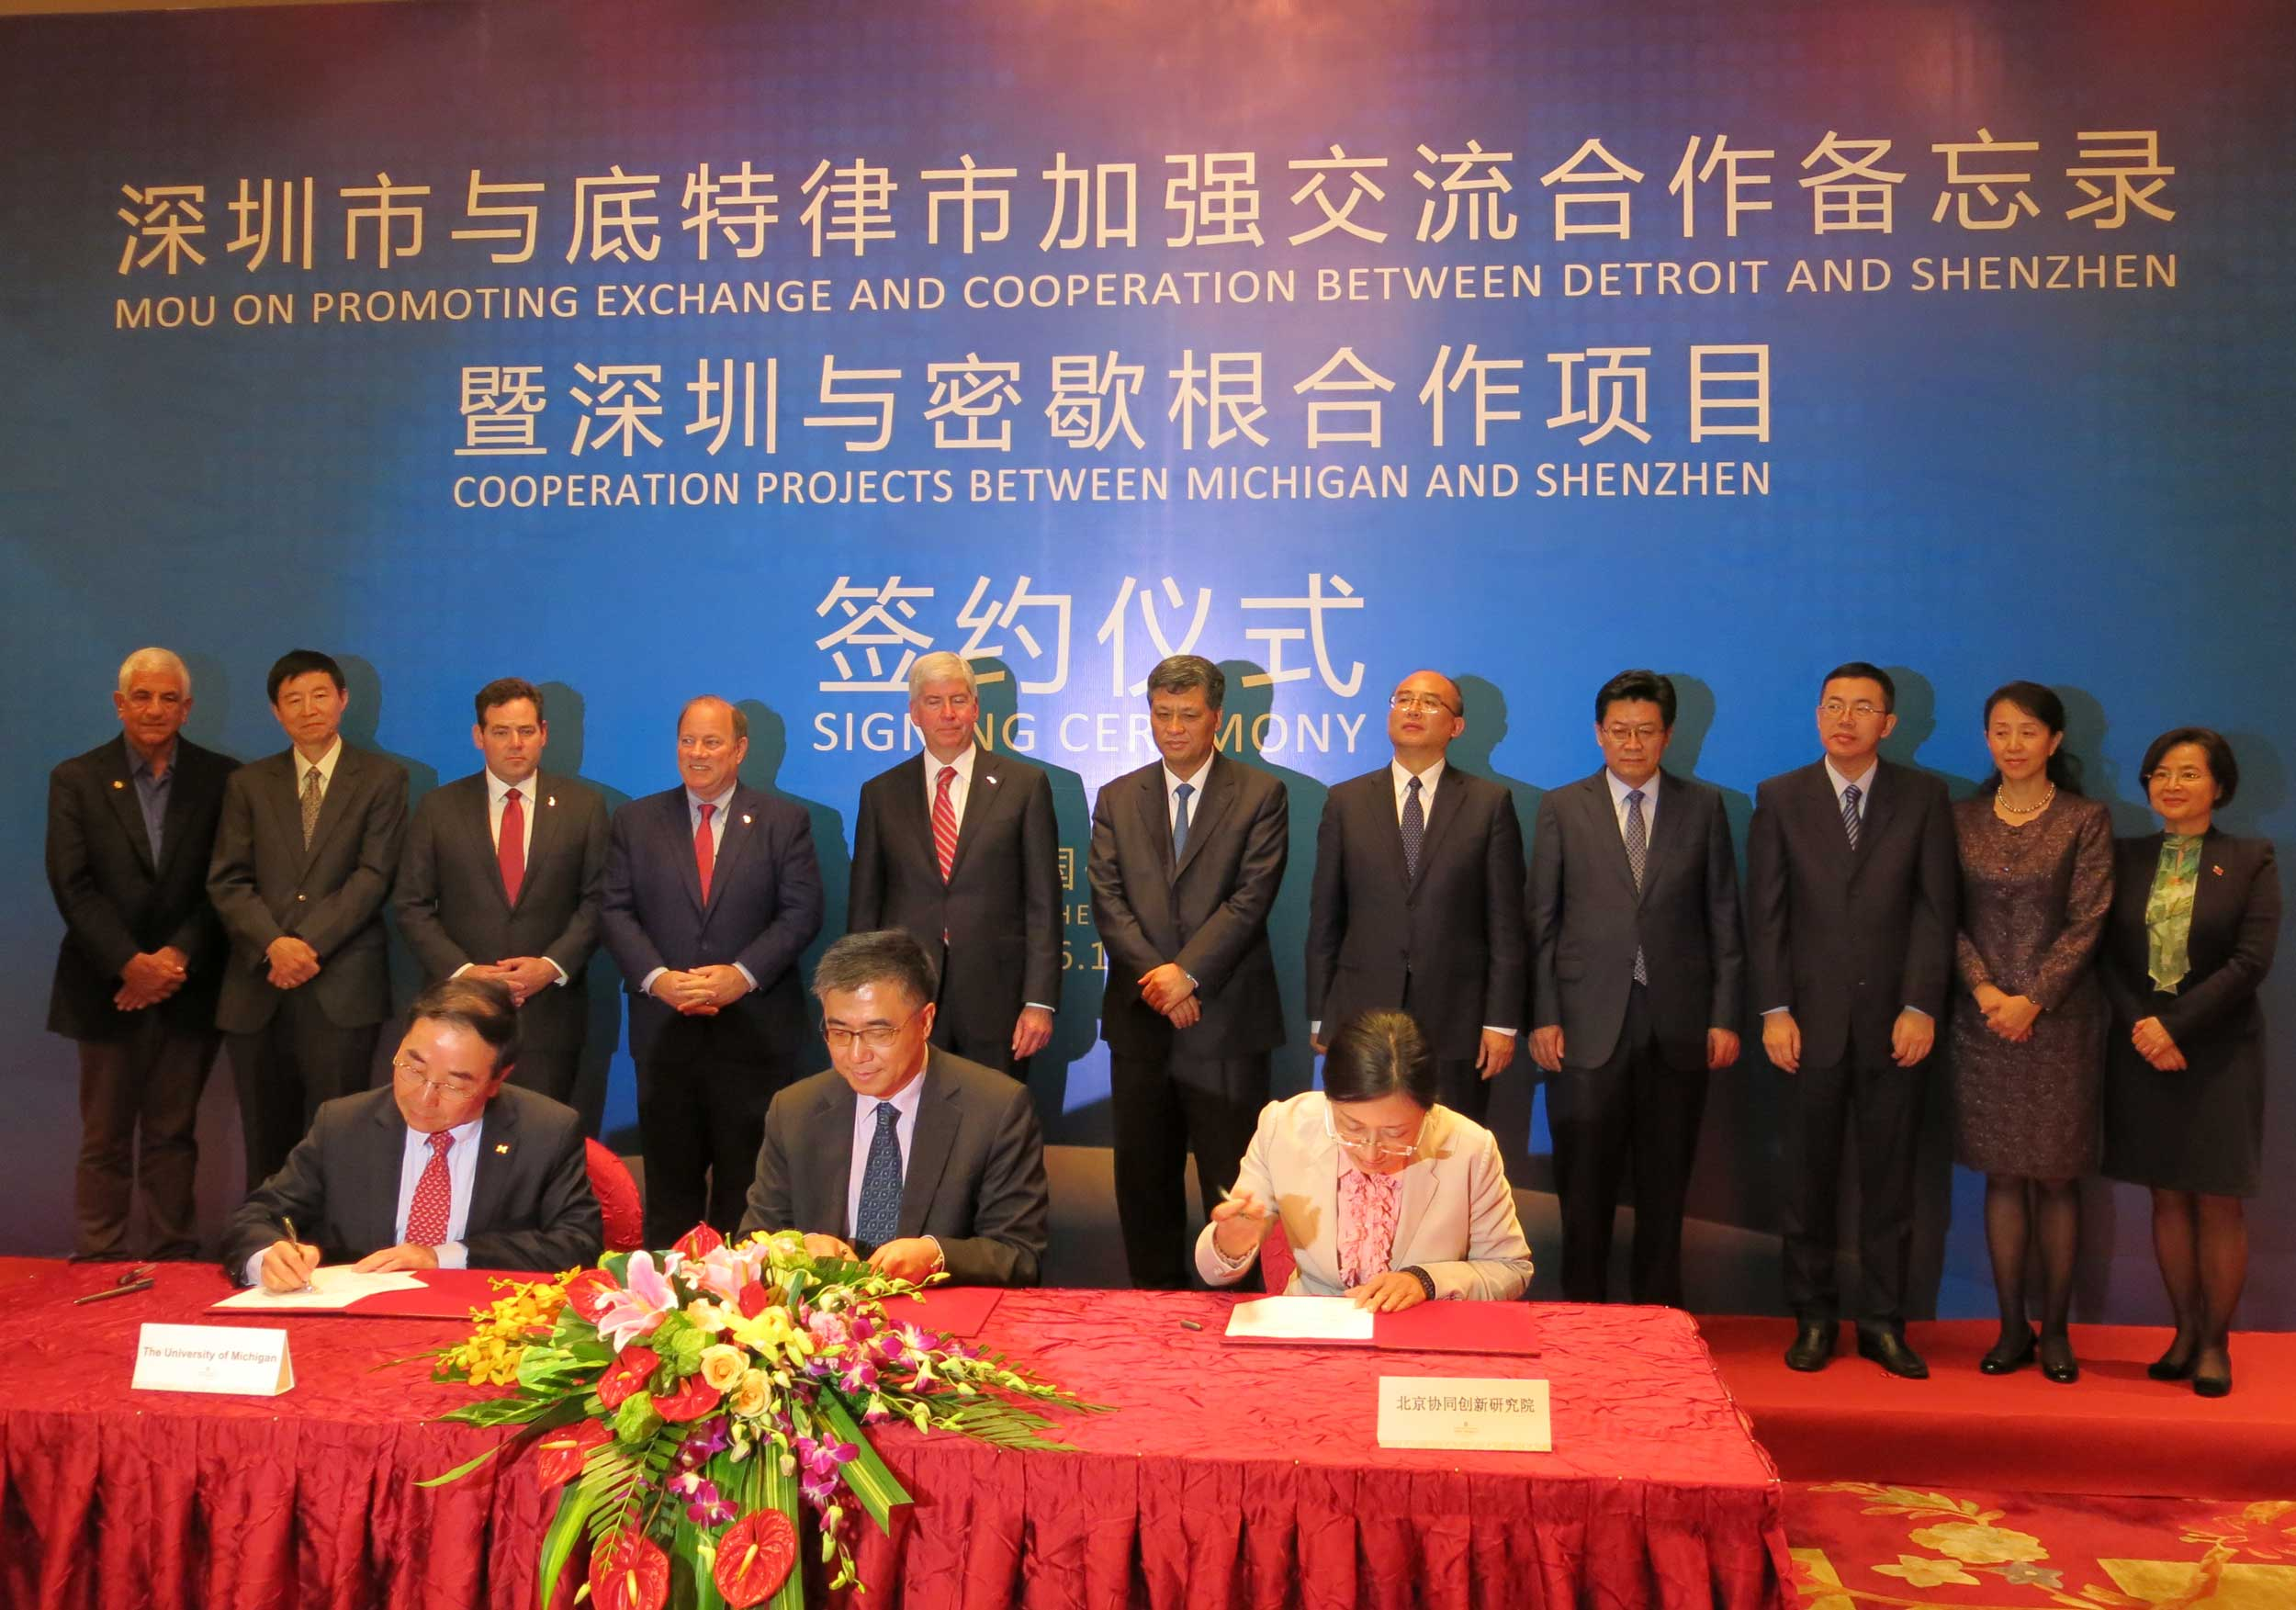 Michigan governor Rick Snyder (Fifth from left) and Shenzhen party secretary Xinrui Ma (Sixth from left) are witnessing the signing of memorandum of understanding between University of Michigan,Beijing Institute for Collaborative Innovation and Southern University of Science and Technology for clean water technology.